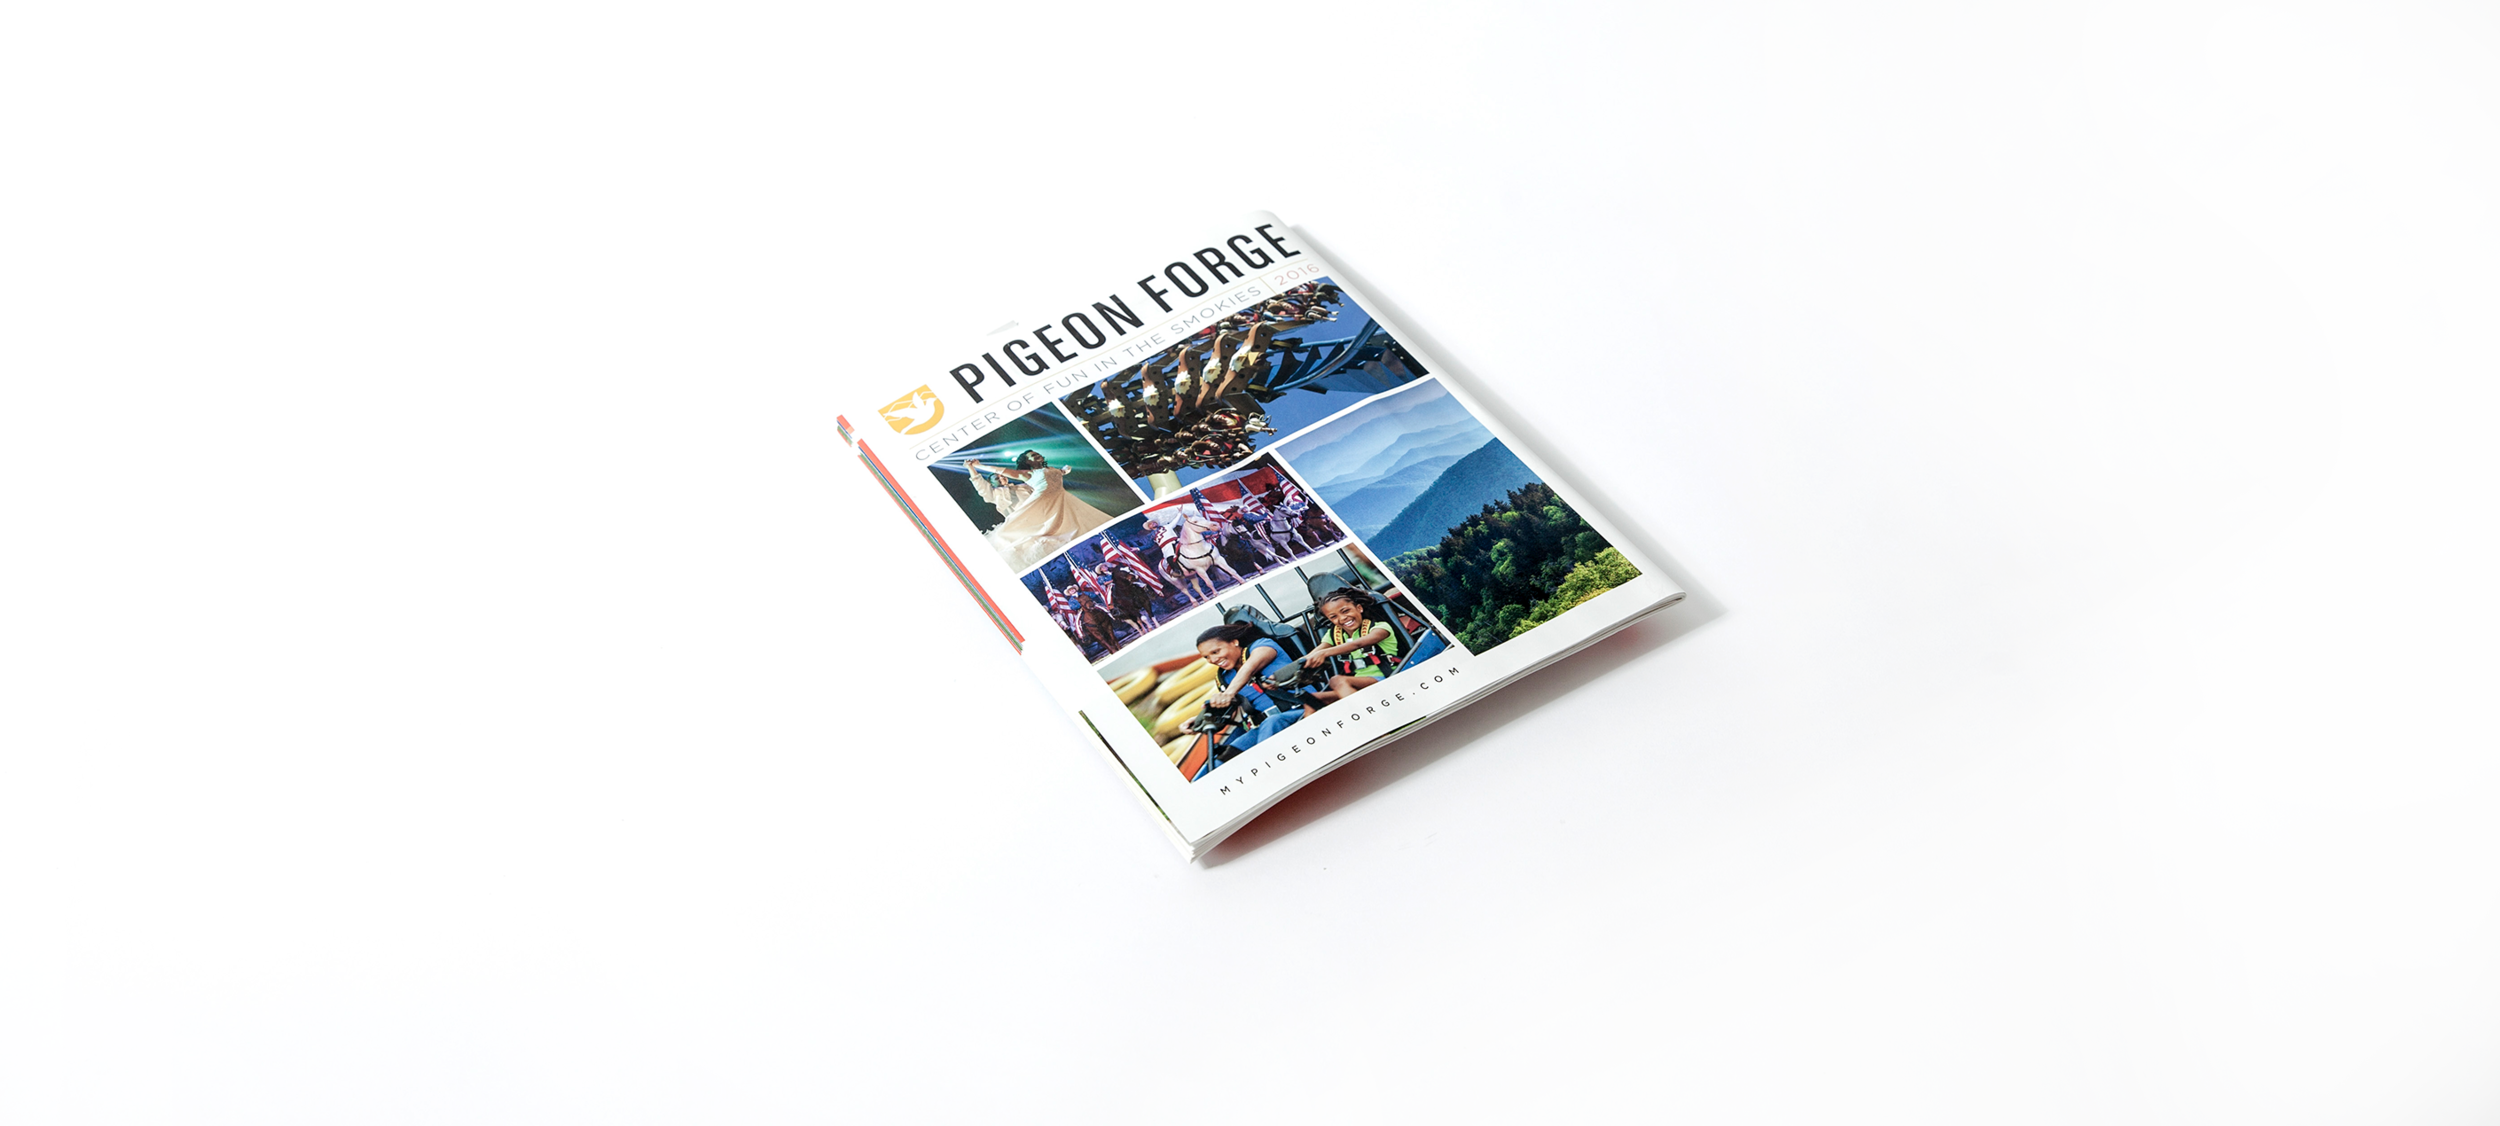 Pigeon Forge Travel and Tourism Guide frame 8